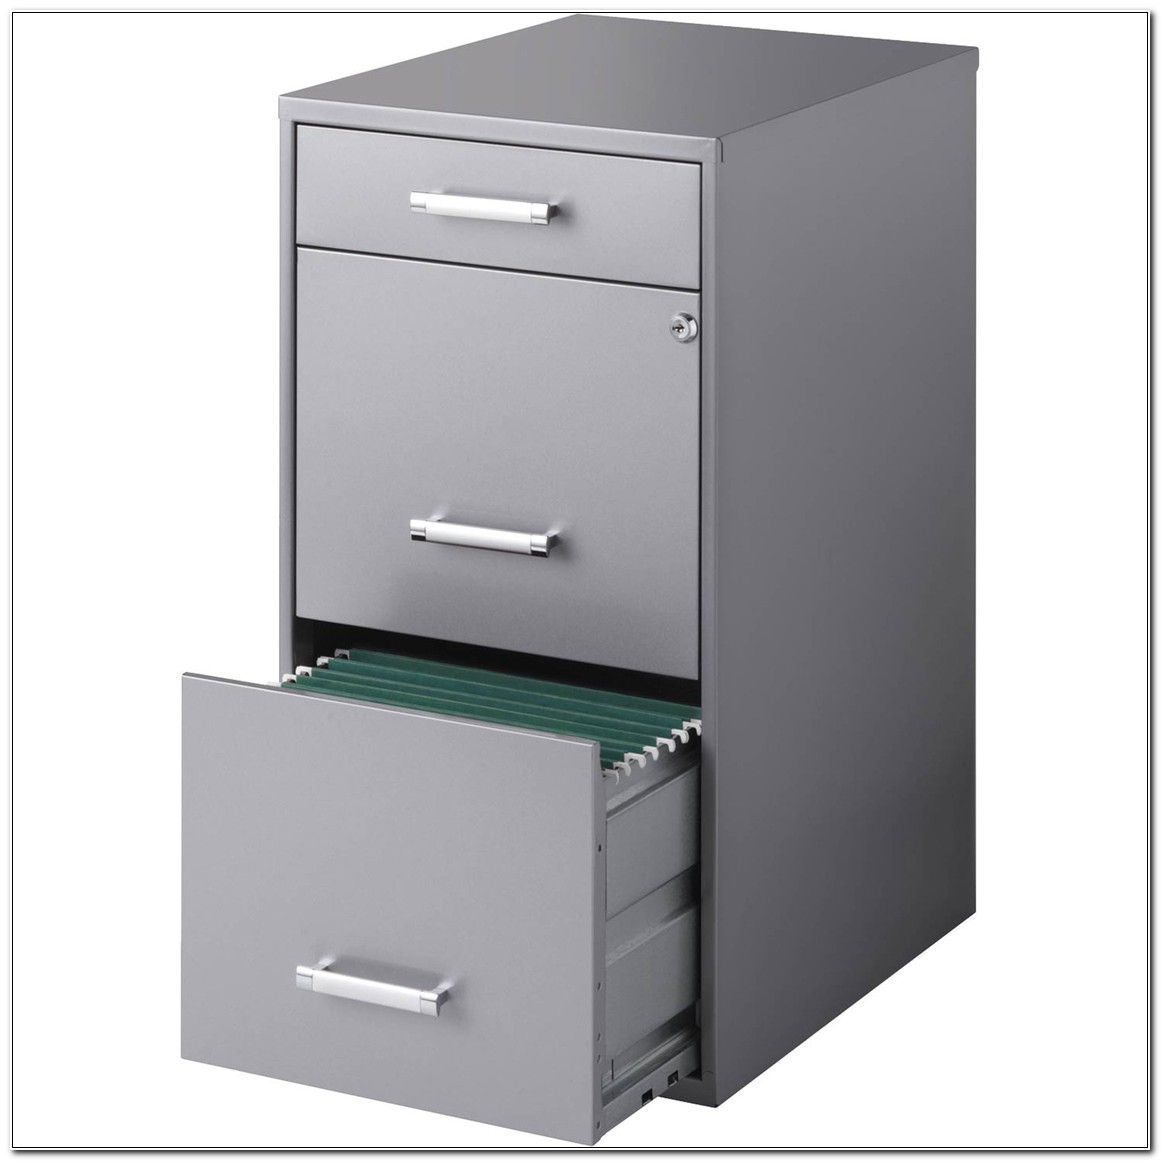 Space Solutions 3 Drawer File Cabinet